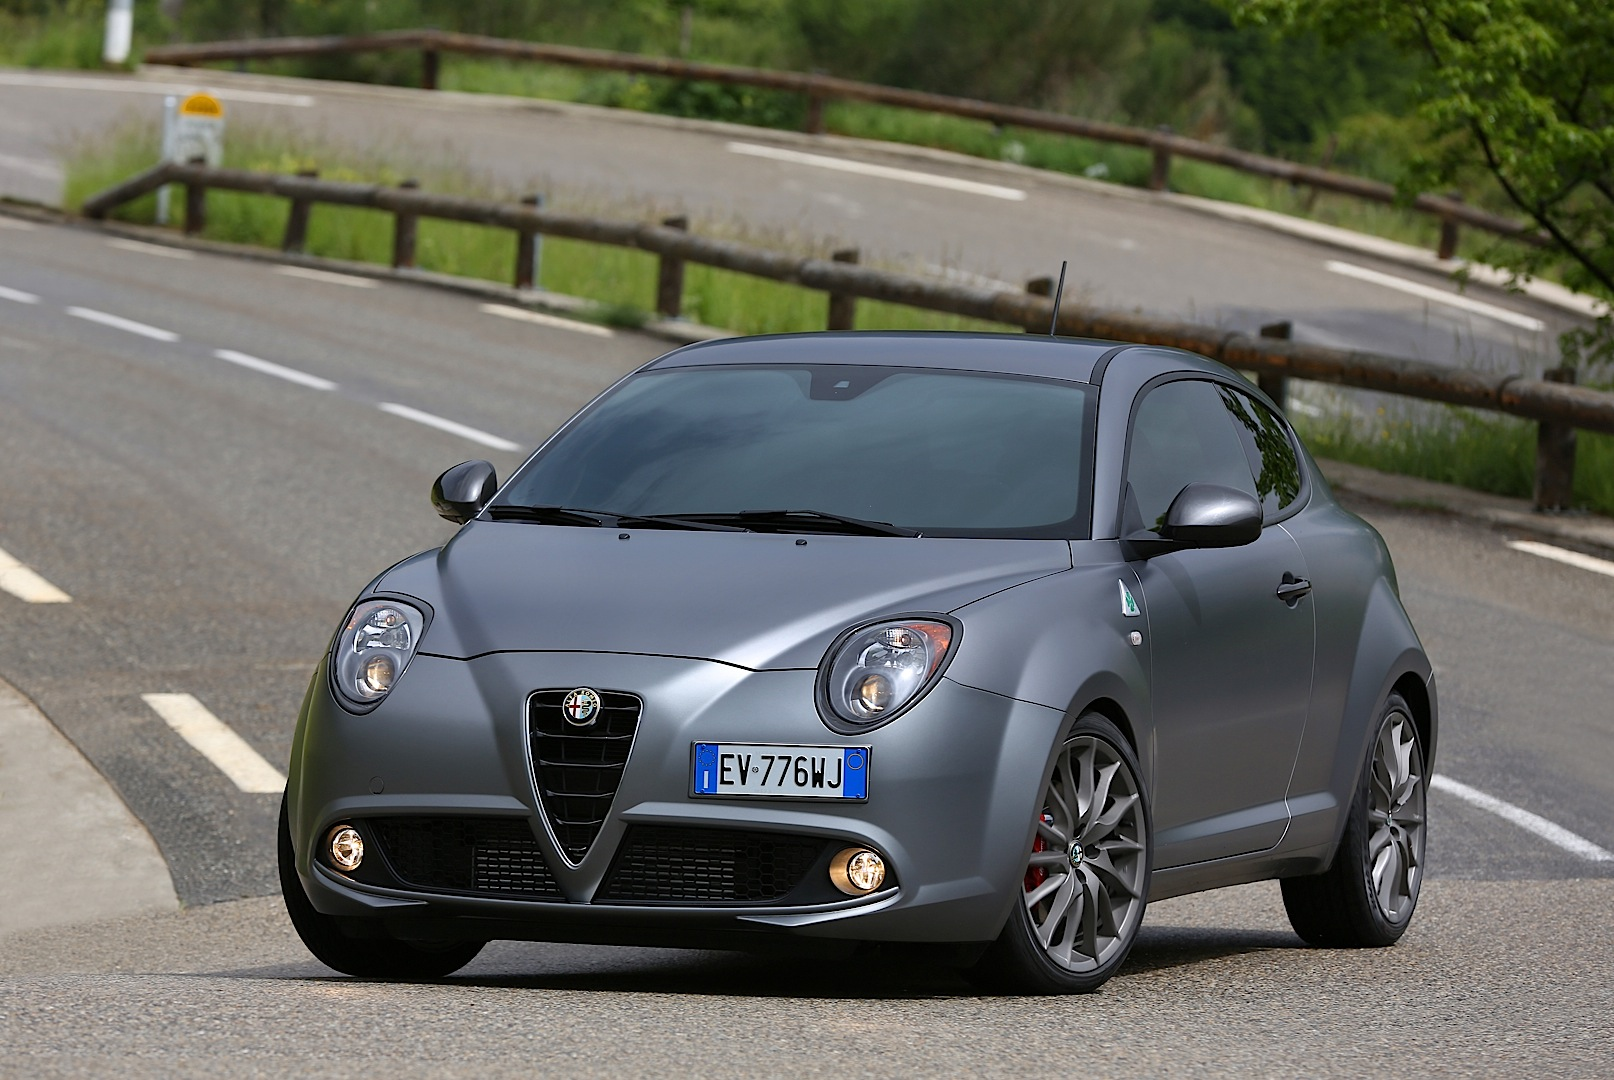 alfa romeo to rebadge mito and giulietta qv as veloce use qv for hardcore models autoevolution. Black Bedroom Furniture Sets. Home Design Ideas